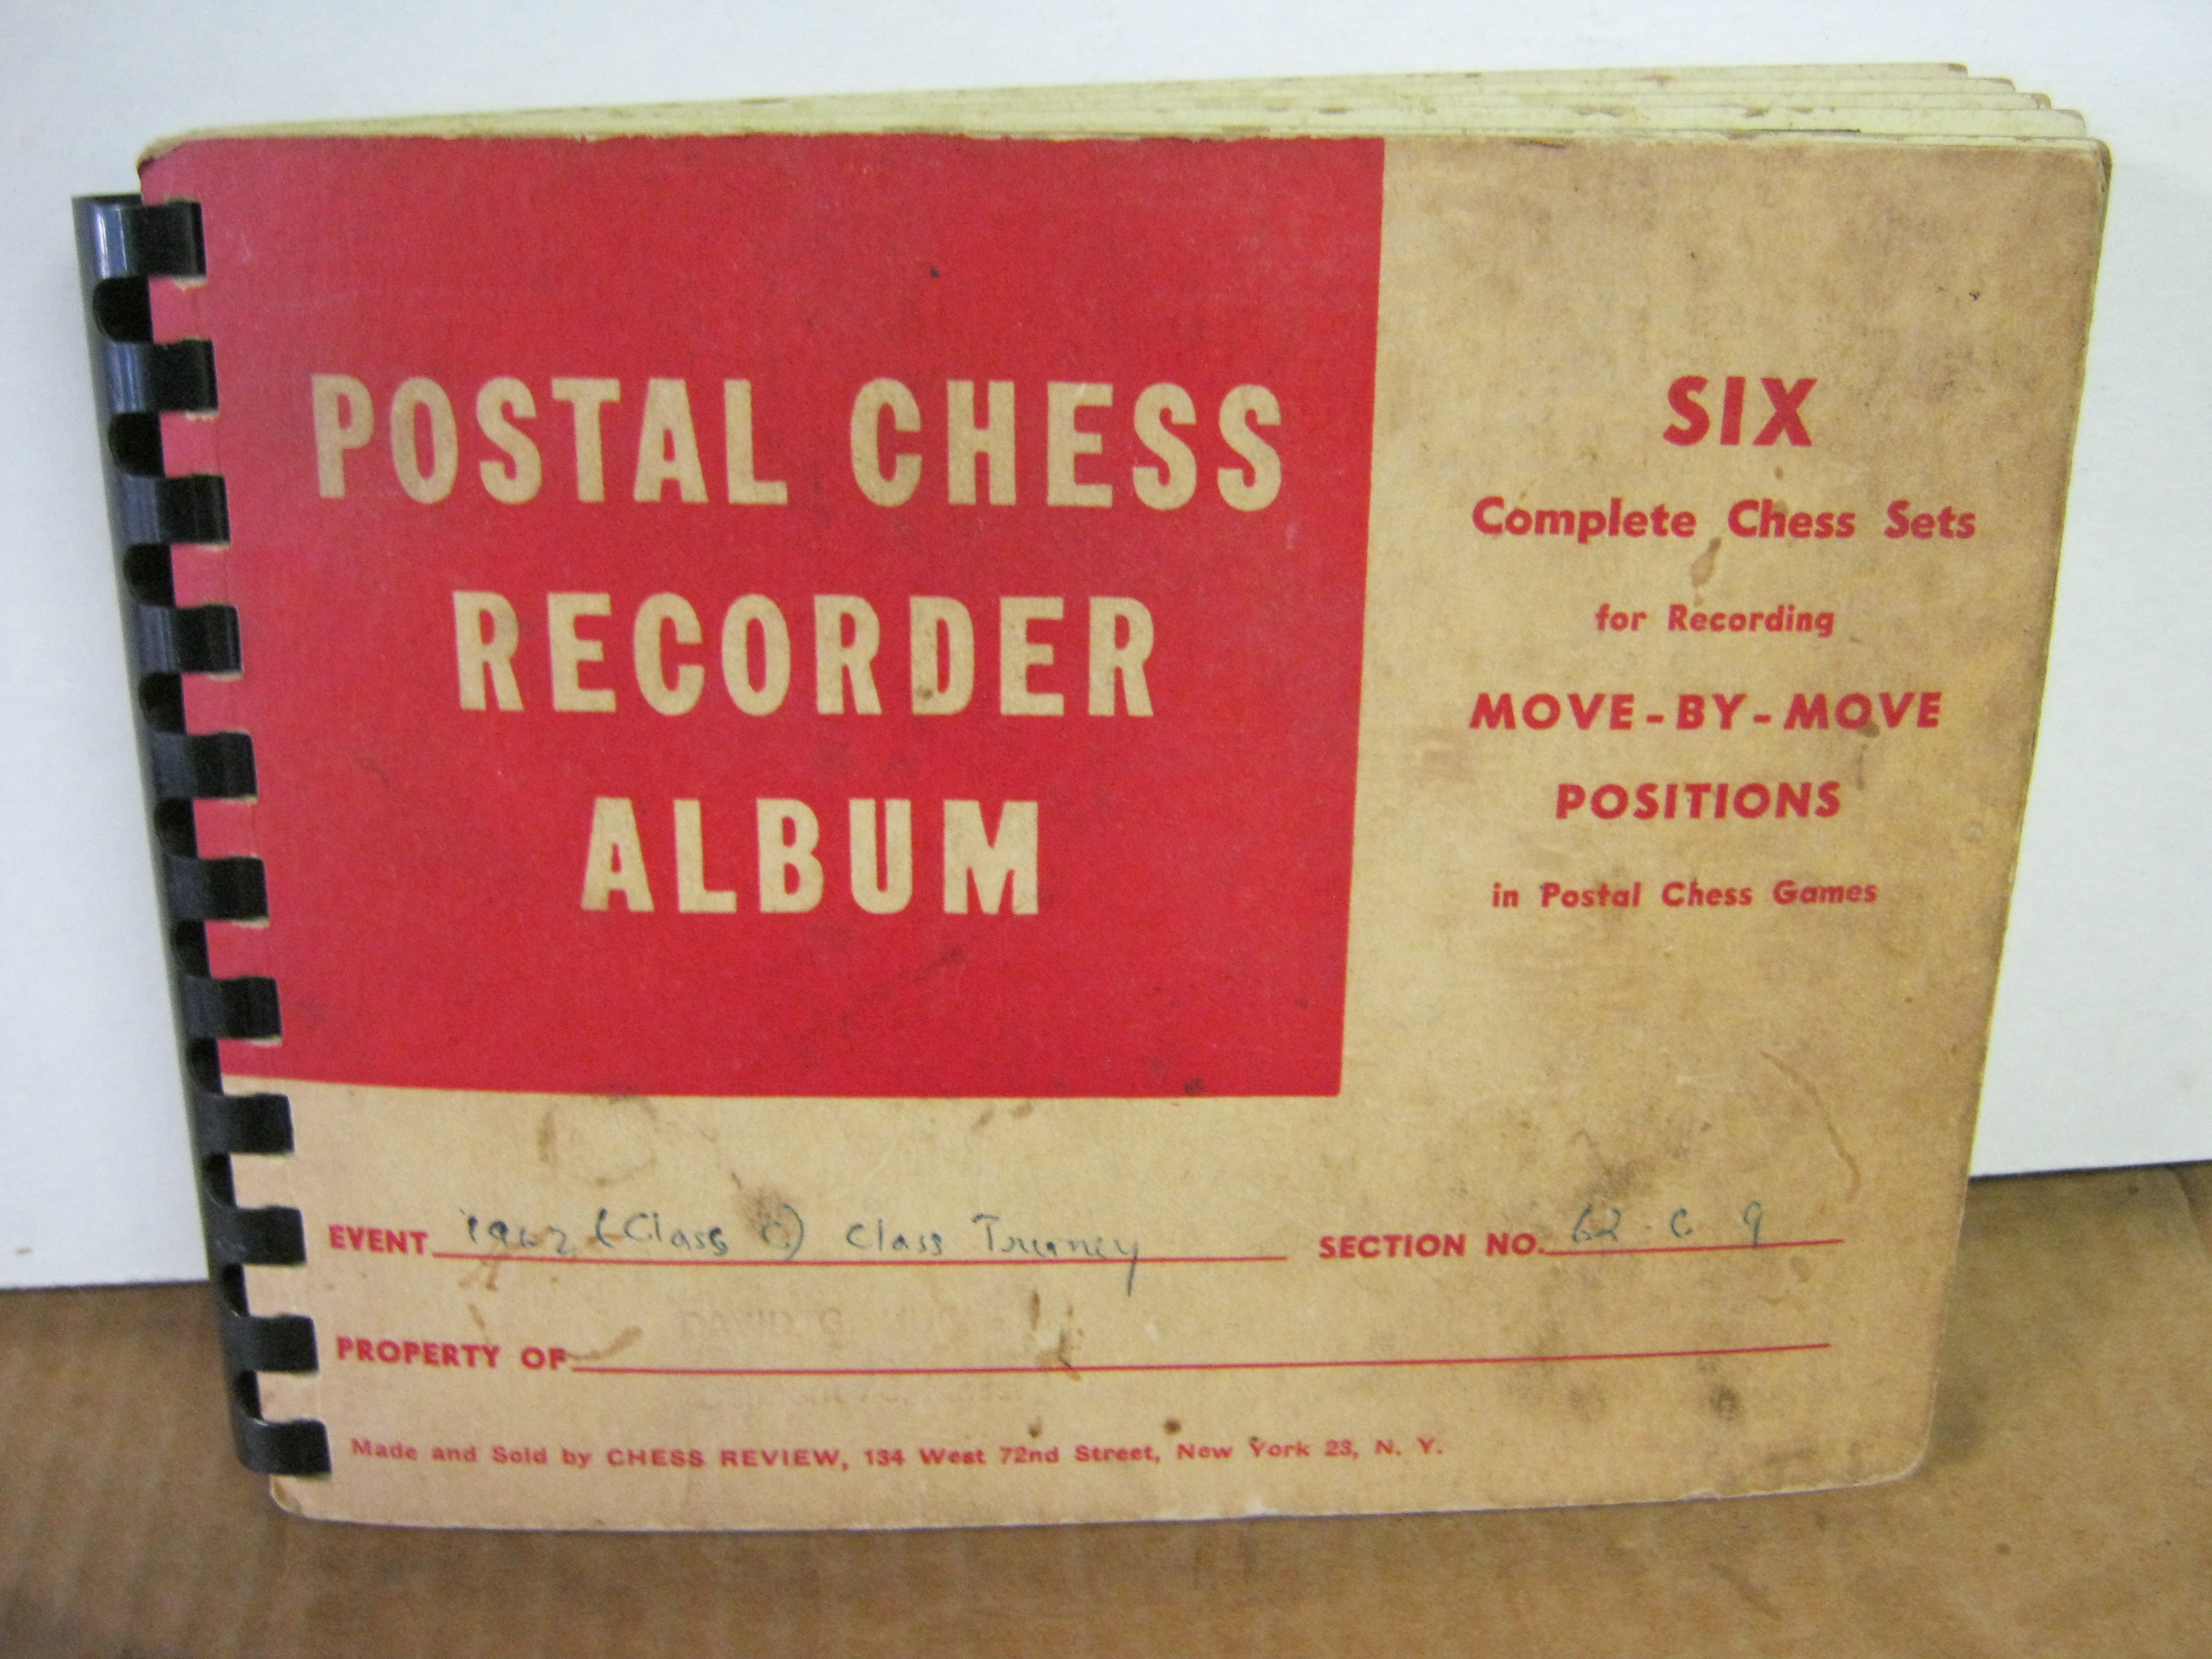 Postal Chess Recorder Album Six Complete Chess Sets For